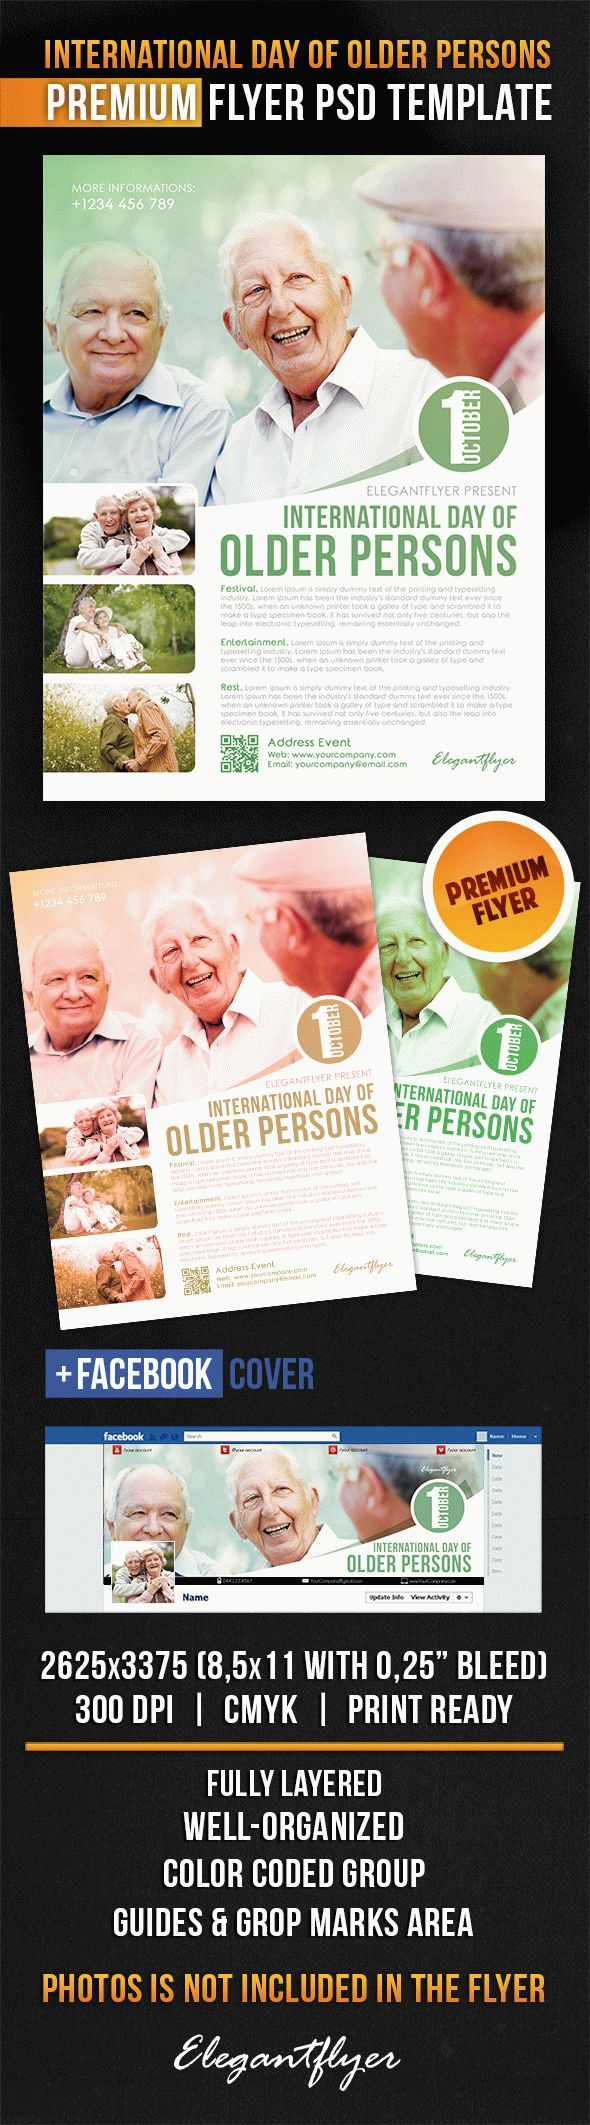 International Day of Older Persons – Flyer PSD Template + Facebook Cover